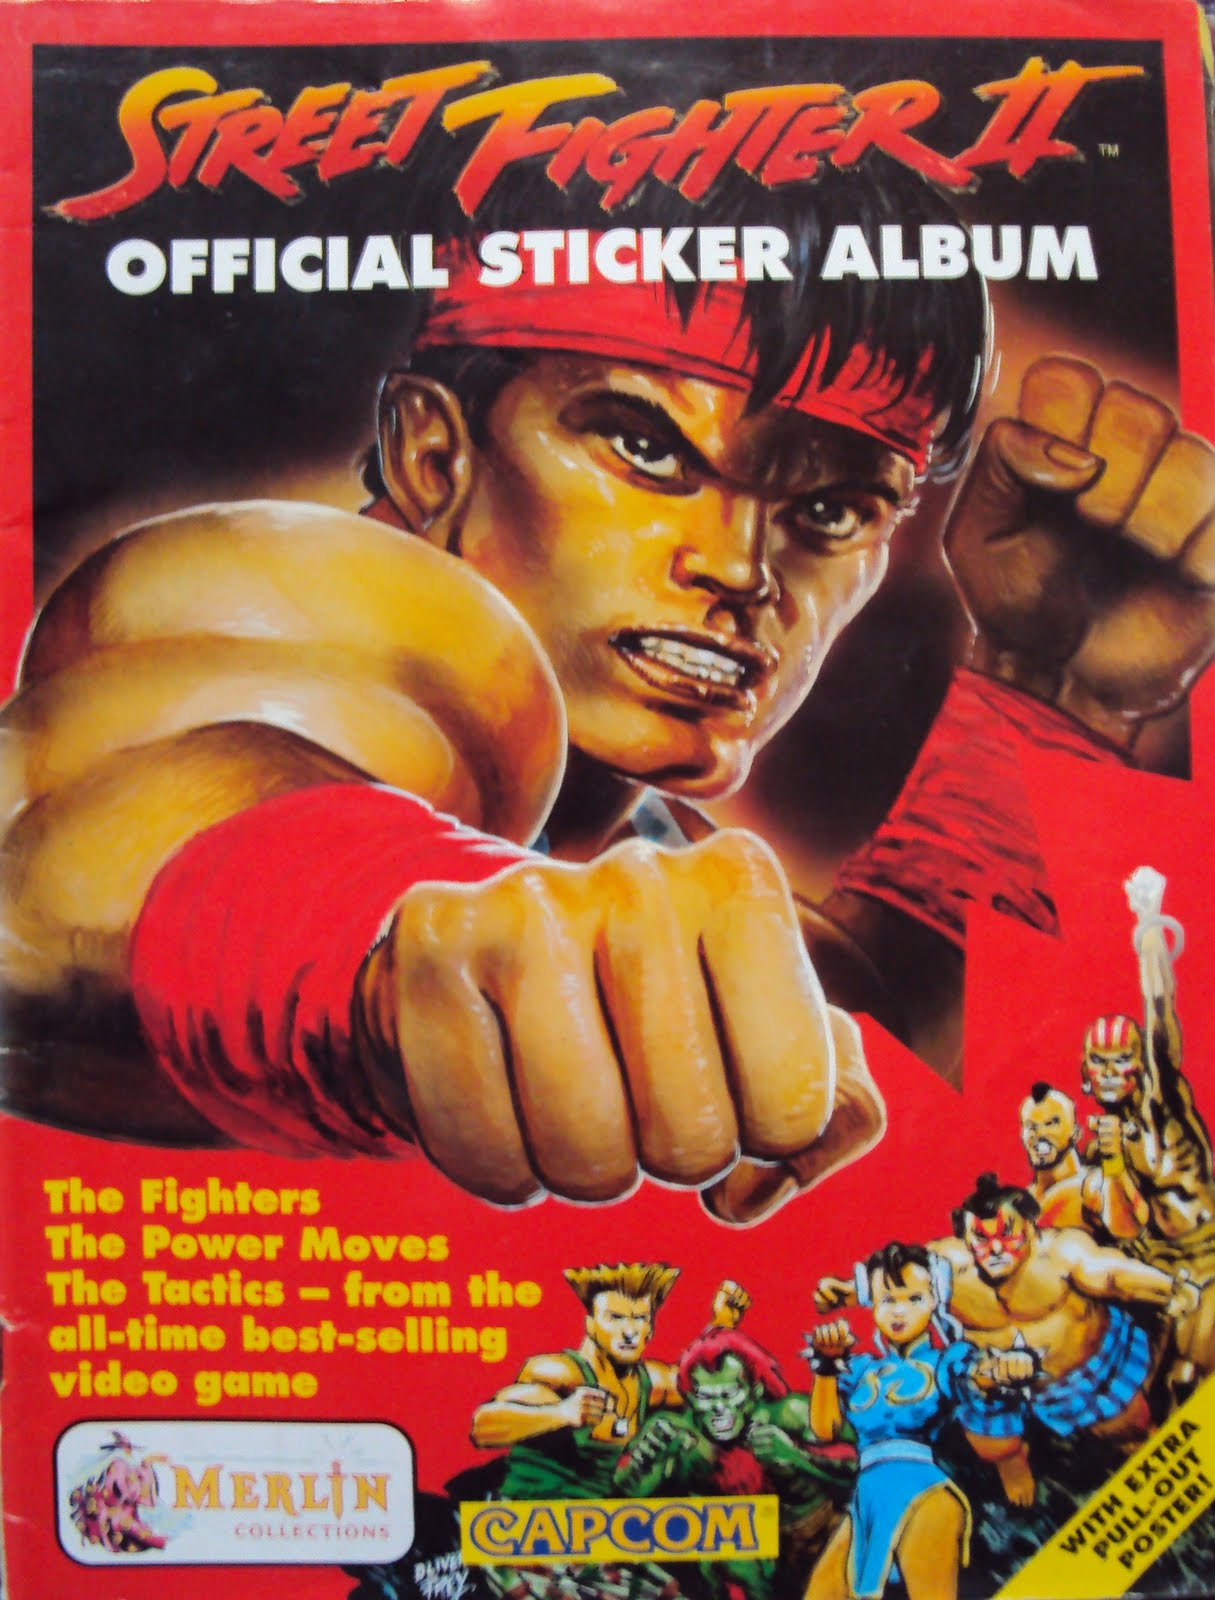 On the End of a Quill: Street Fighter 2 / Super Street Fighter 2